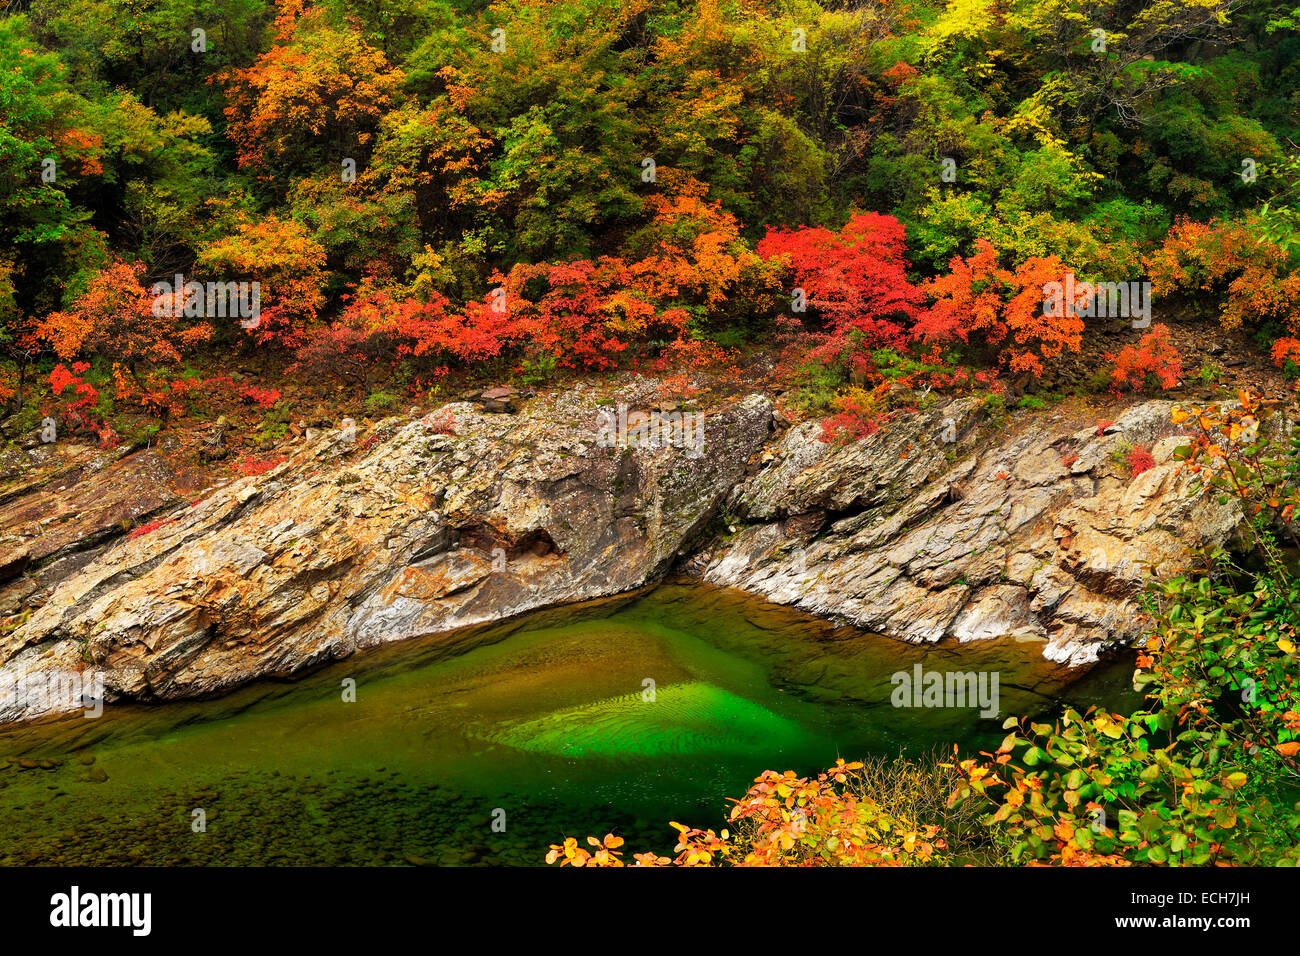 Black River in autumn landscape, Heihe National Park, Qinling Mountain, Shaanxi Province, China - Stock Image